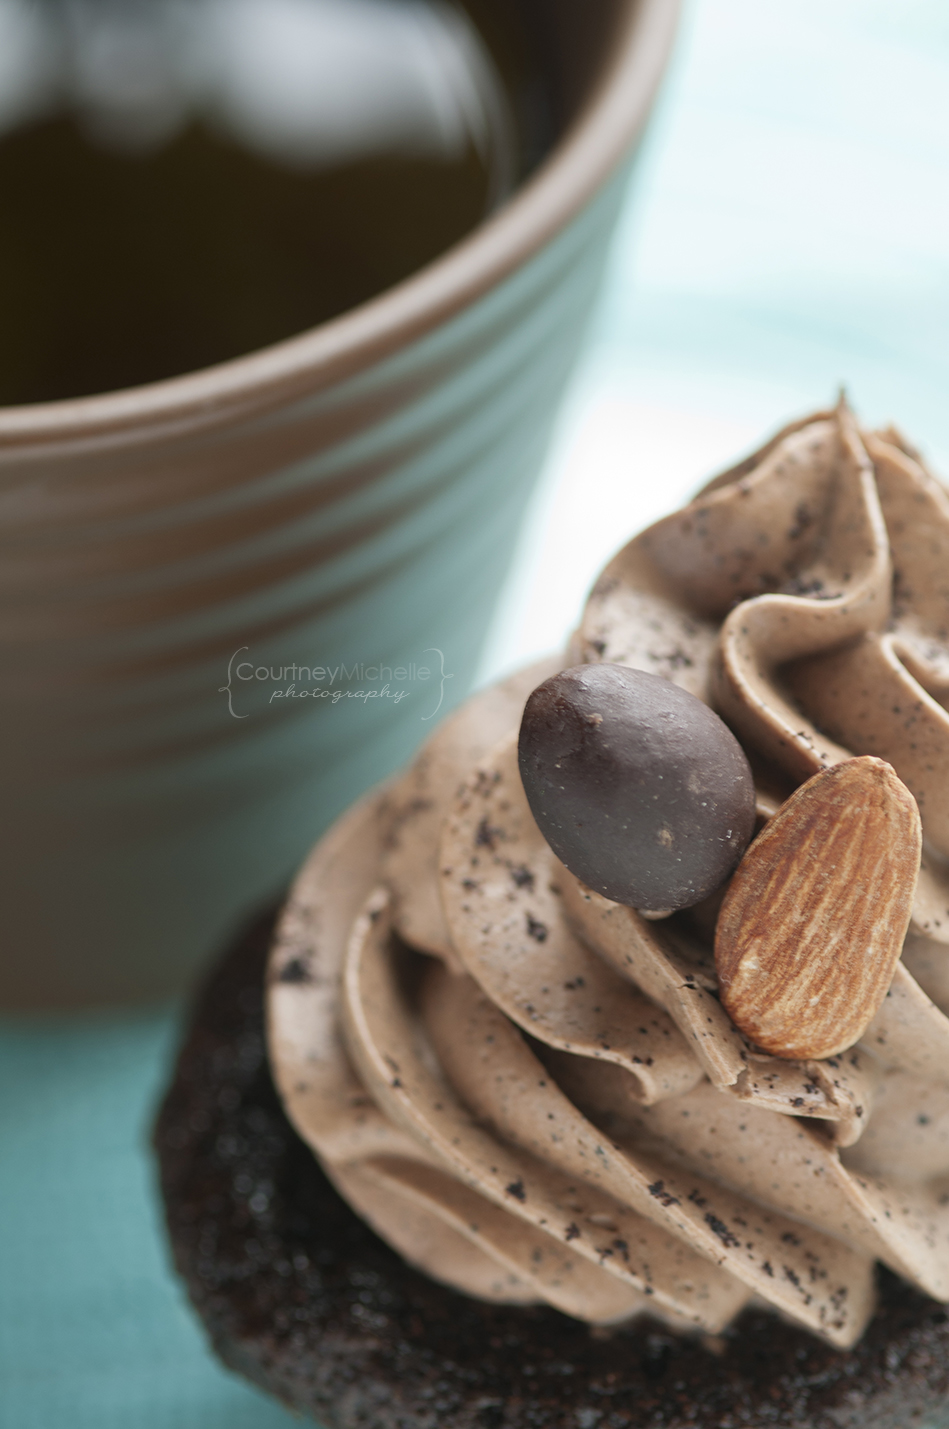 chocolate-espresso-cupcake-with-coffee-chicago-food-lifestyle-photography-by-courtney-laper.jpg